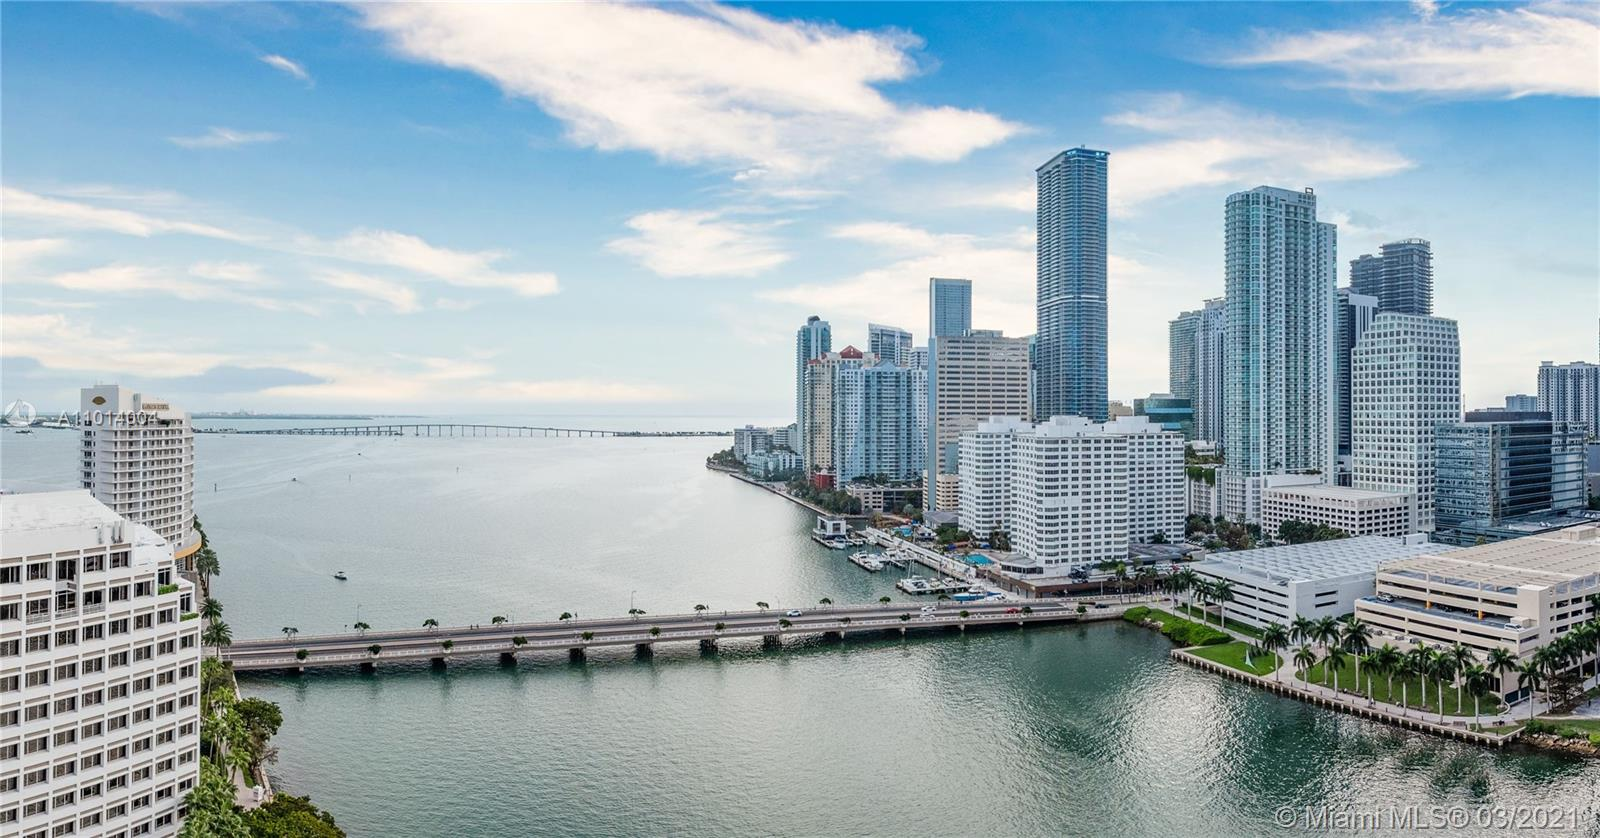 Courvoisier Courts #2403 - 701 Brickell Key Blvd #2403, Miami, FL 33131